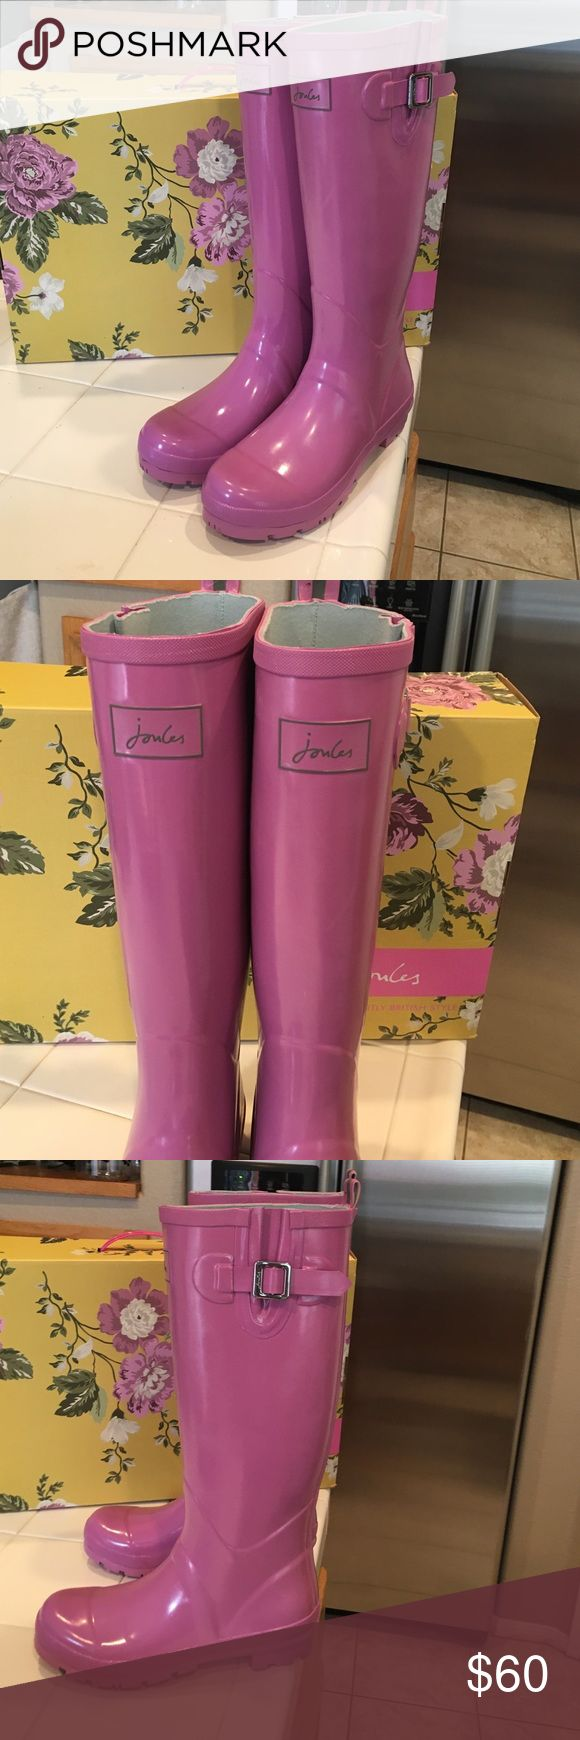 Joules Rain Boots Fashionable wellies. Pretty pink buckle boots. Tall style. NWT. Comes with half a box. I don't have the lid, as Nordstrom didn't have it when I purchased them. Joules Shoes Winter & Rain Boots